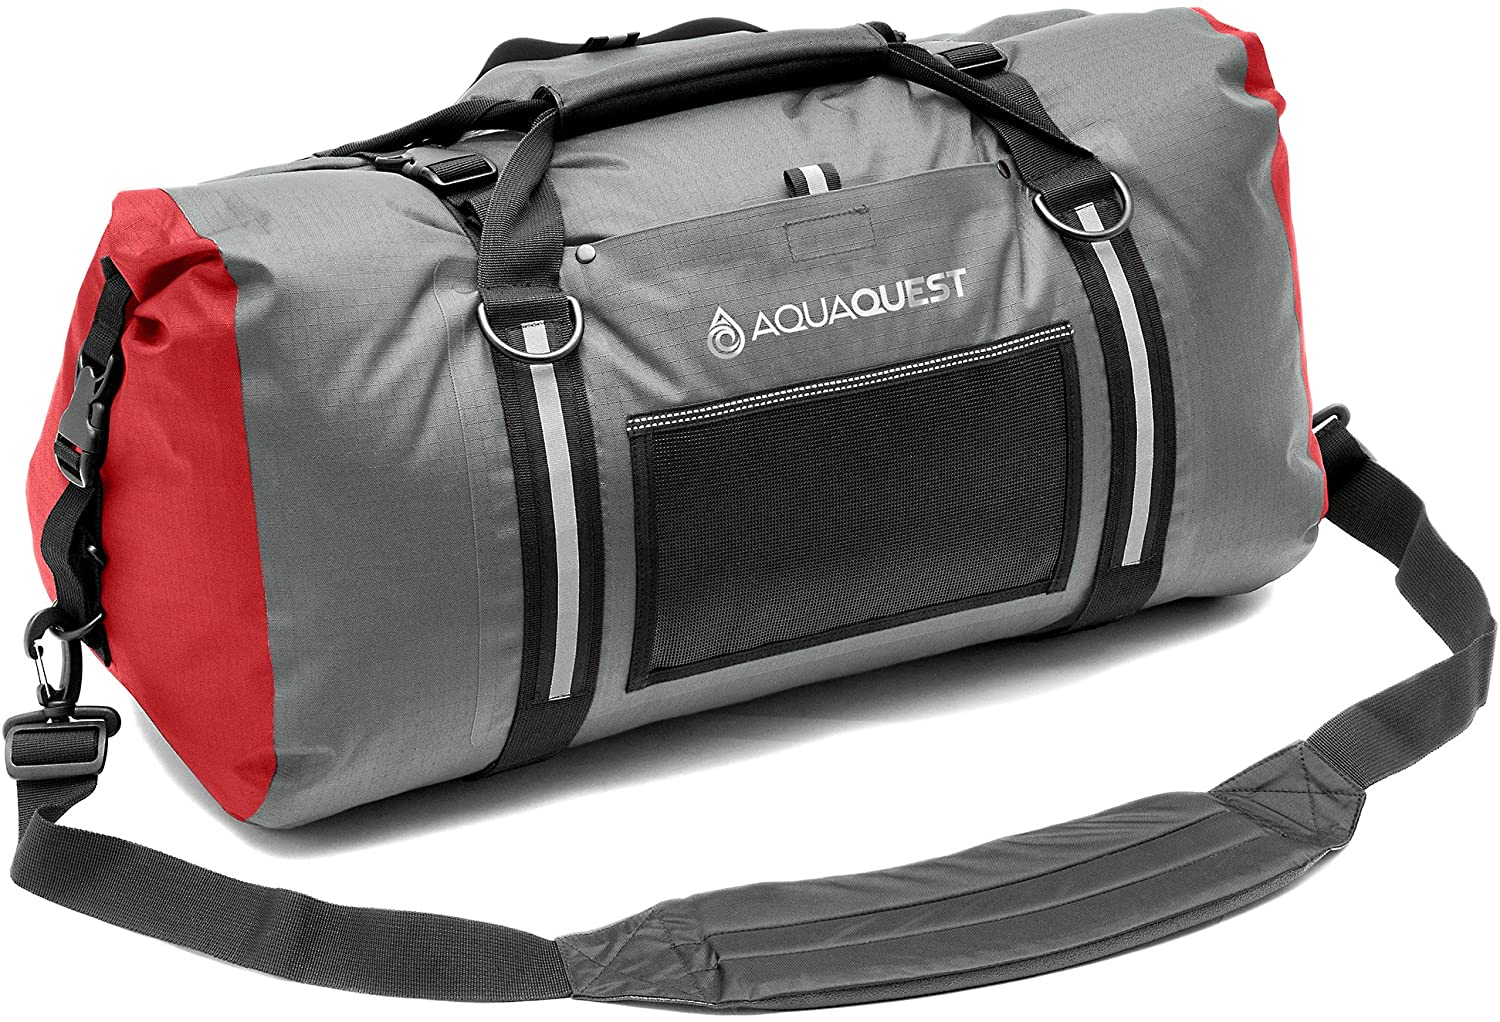 Aqua Quest White Water Duffel - 100% Waterproof, Heavy Duty, Versatile, Comfortable - Durable Protective Dry Bag for Travel, Sport, Motorcycle, Boat, Fishing - 50, 75, or 100 L